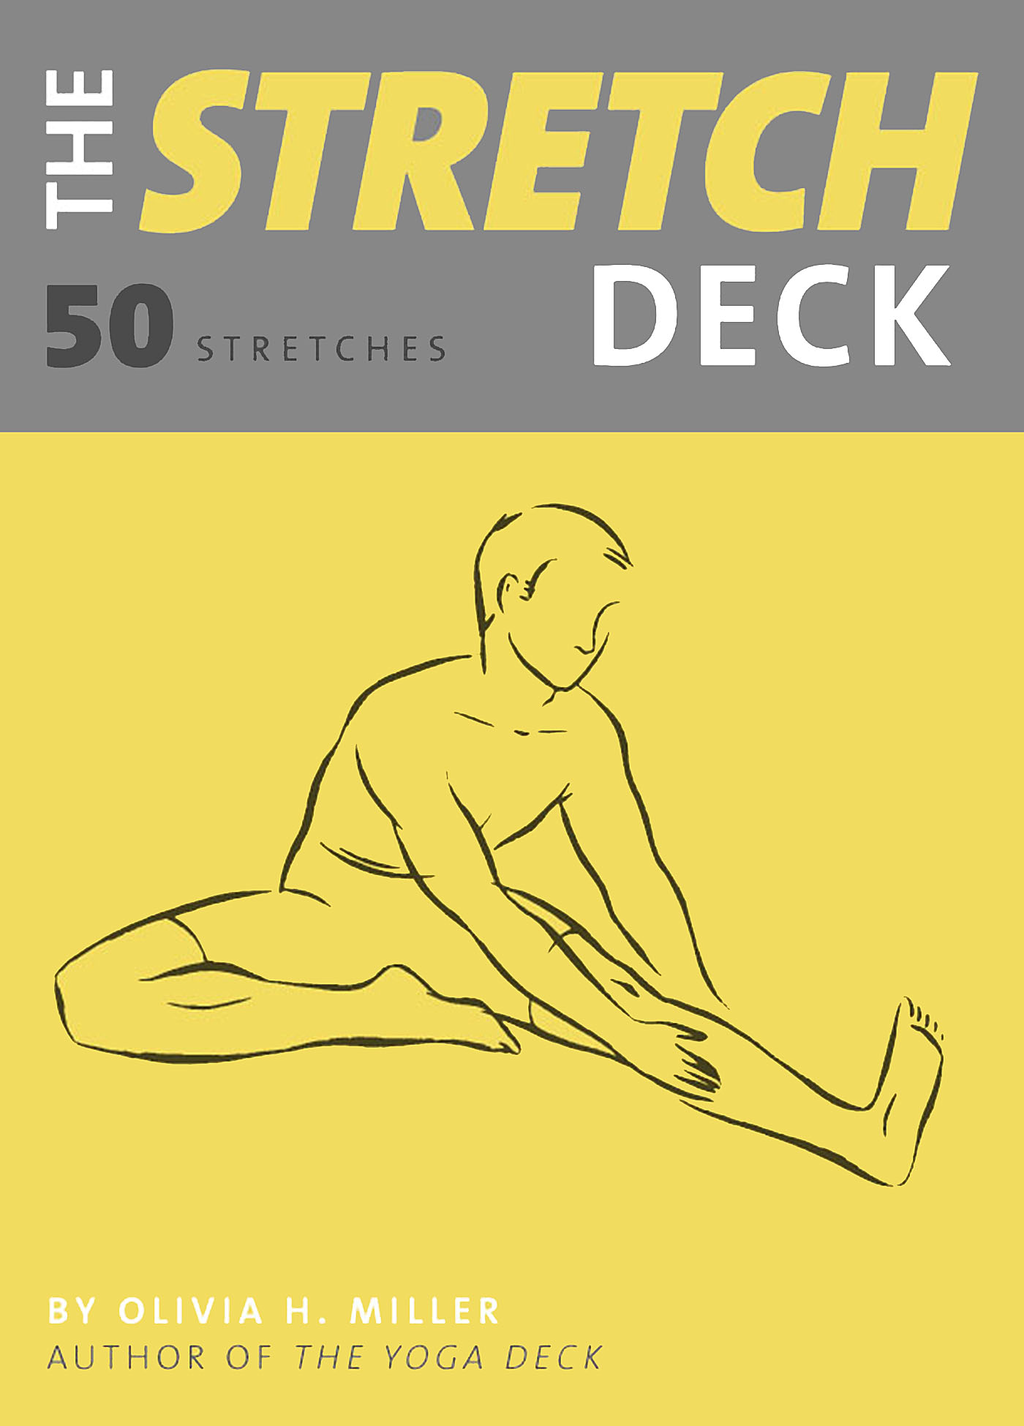 The Stretch Deck